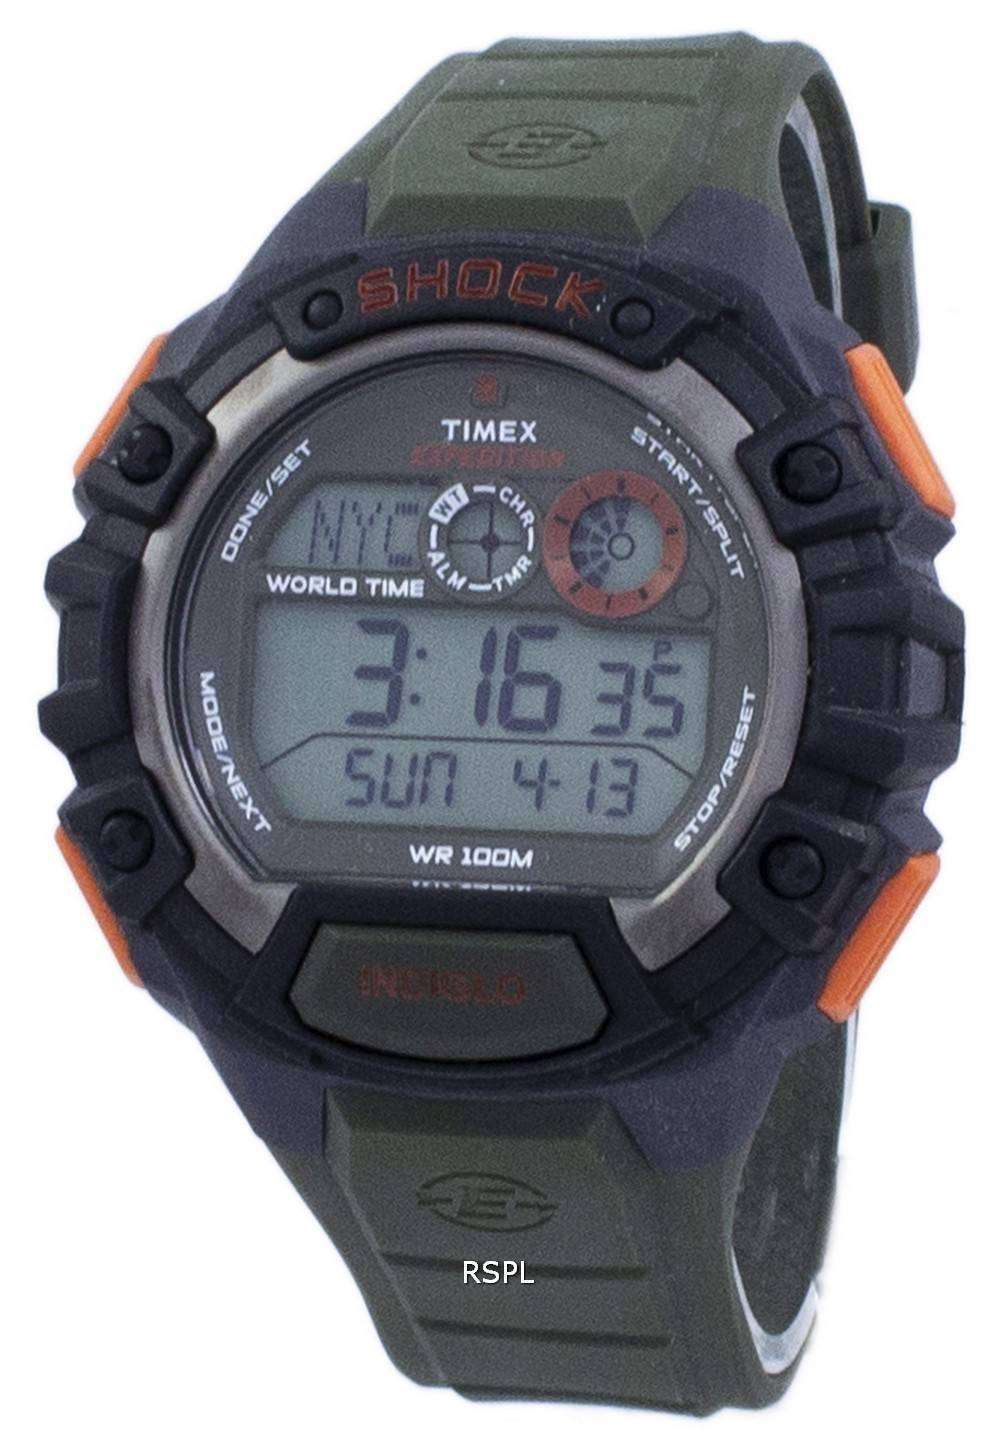 nuevo producto 264e8 721c1 Timex Expedition Shock World Time Indiglo Digital T49972 Men's Watch